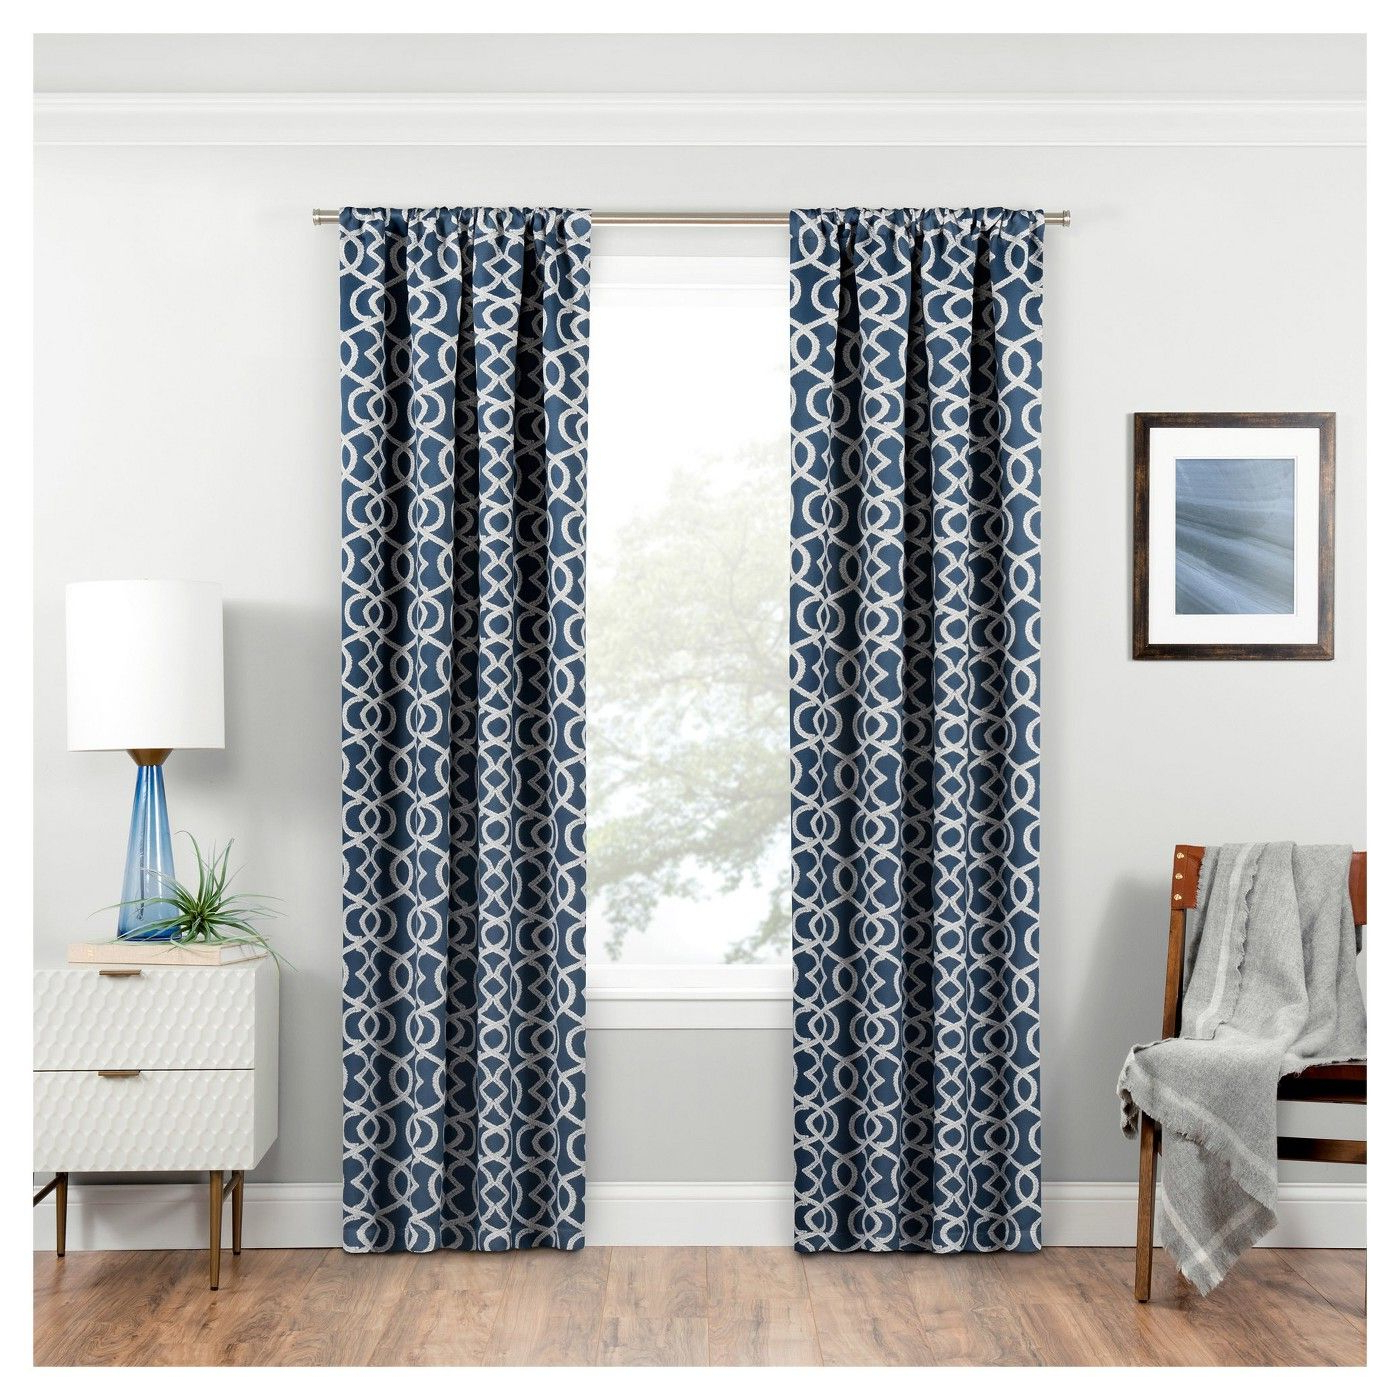 Thermaweave Blackout Curtains Within Trendy Isante Trellis Thermaweave Blackout Curtain – Eclipse (View 17 of 20)